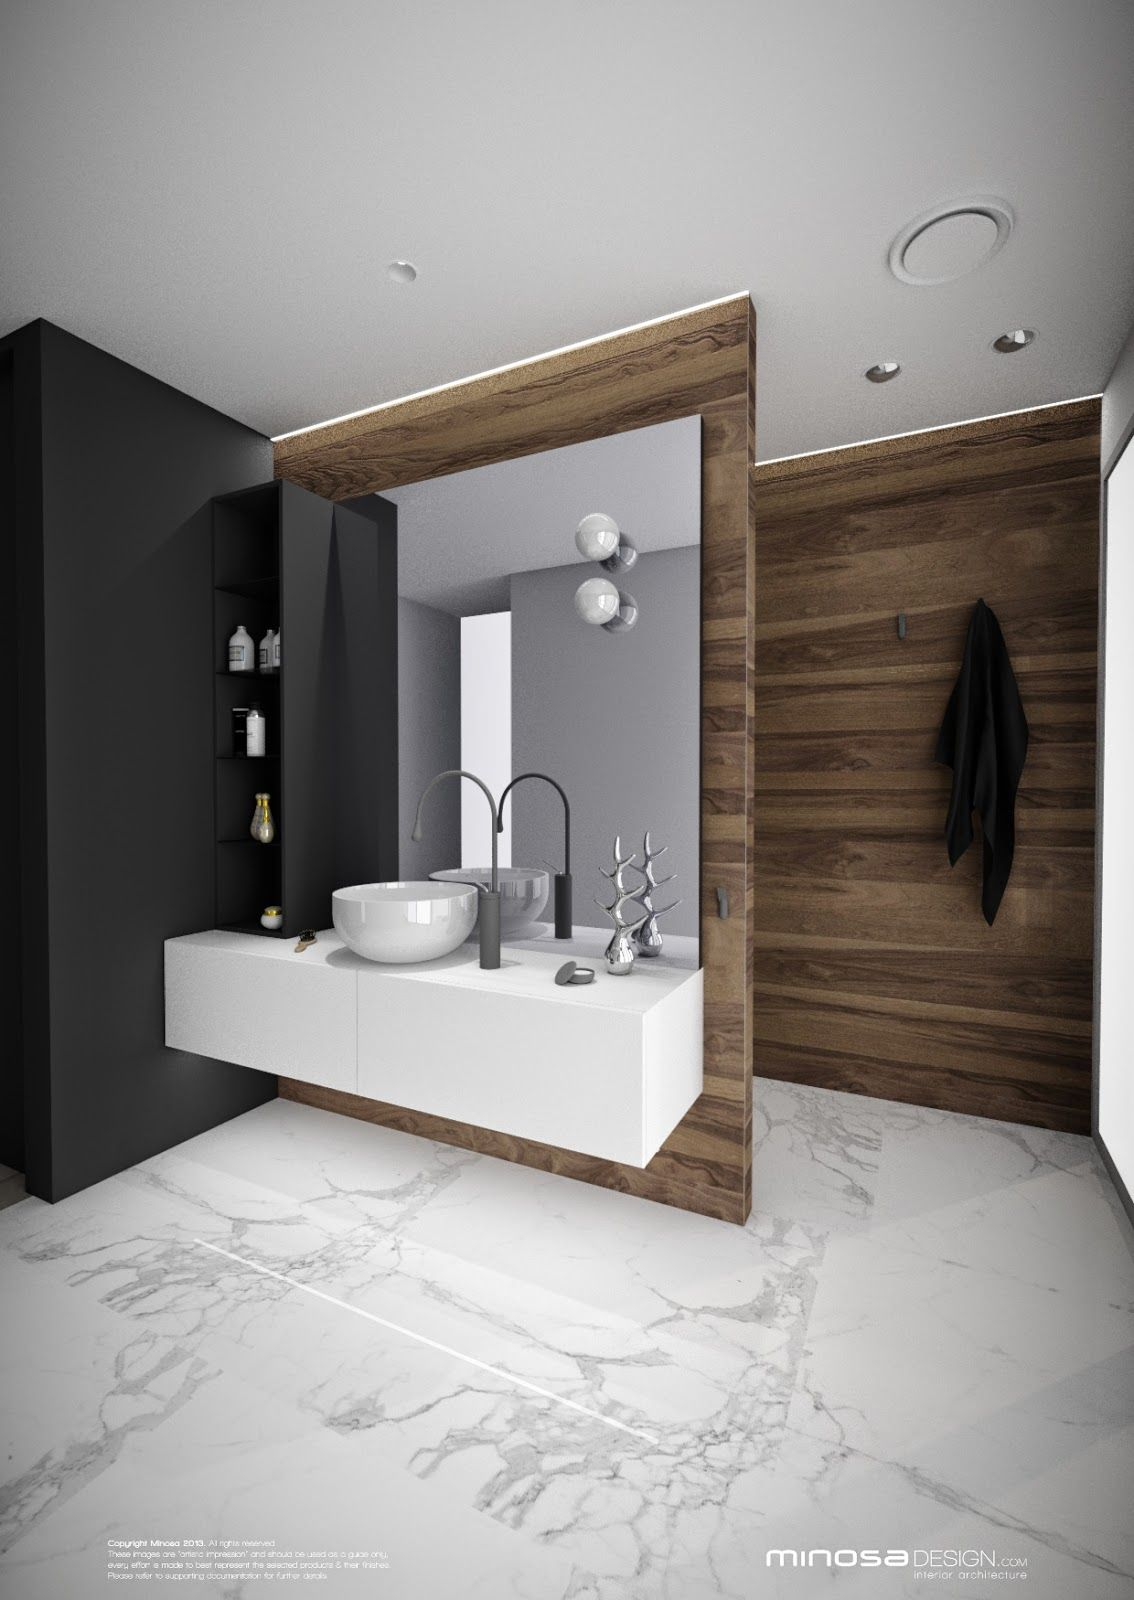 13+ Best Bathroom Remodel Ideas & Makeovers Design is part of Best Bathroom Remodel Ideas Makeovers Design - BATHROOM REMODEL IDEAS  If you're trying to find shower room remodel suggestions in order to help you visualize new possibilities for your residence in or